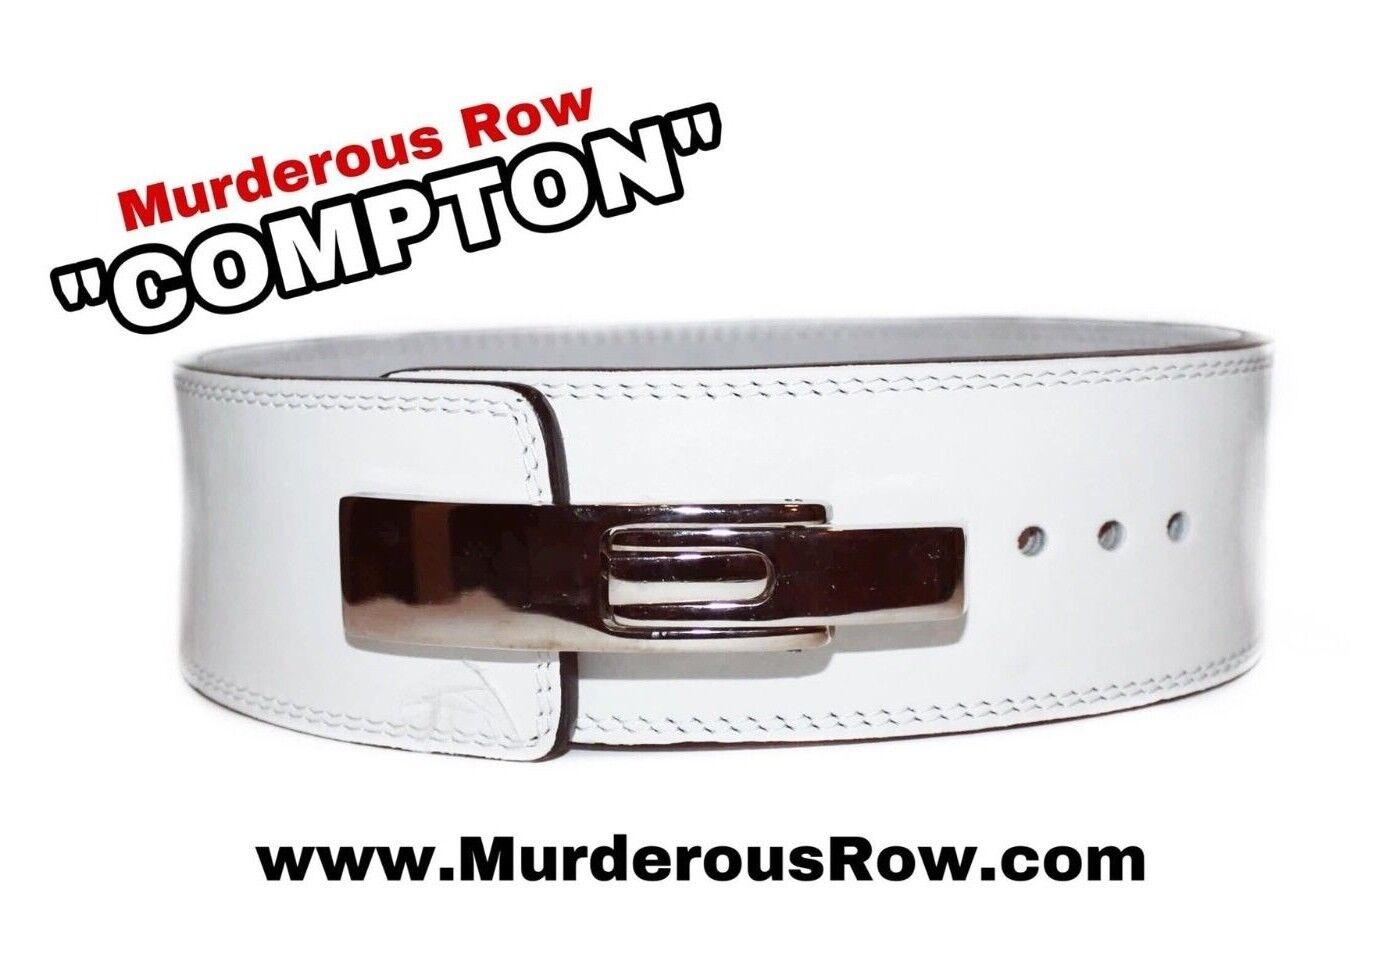 Murderous Row   COMPTON  Powerlifting Lever 10mm Power Belt (XL)- LIFE WARRANTY  shop makes buying and selling